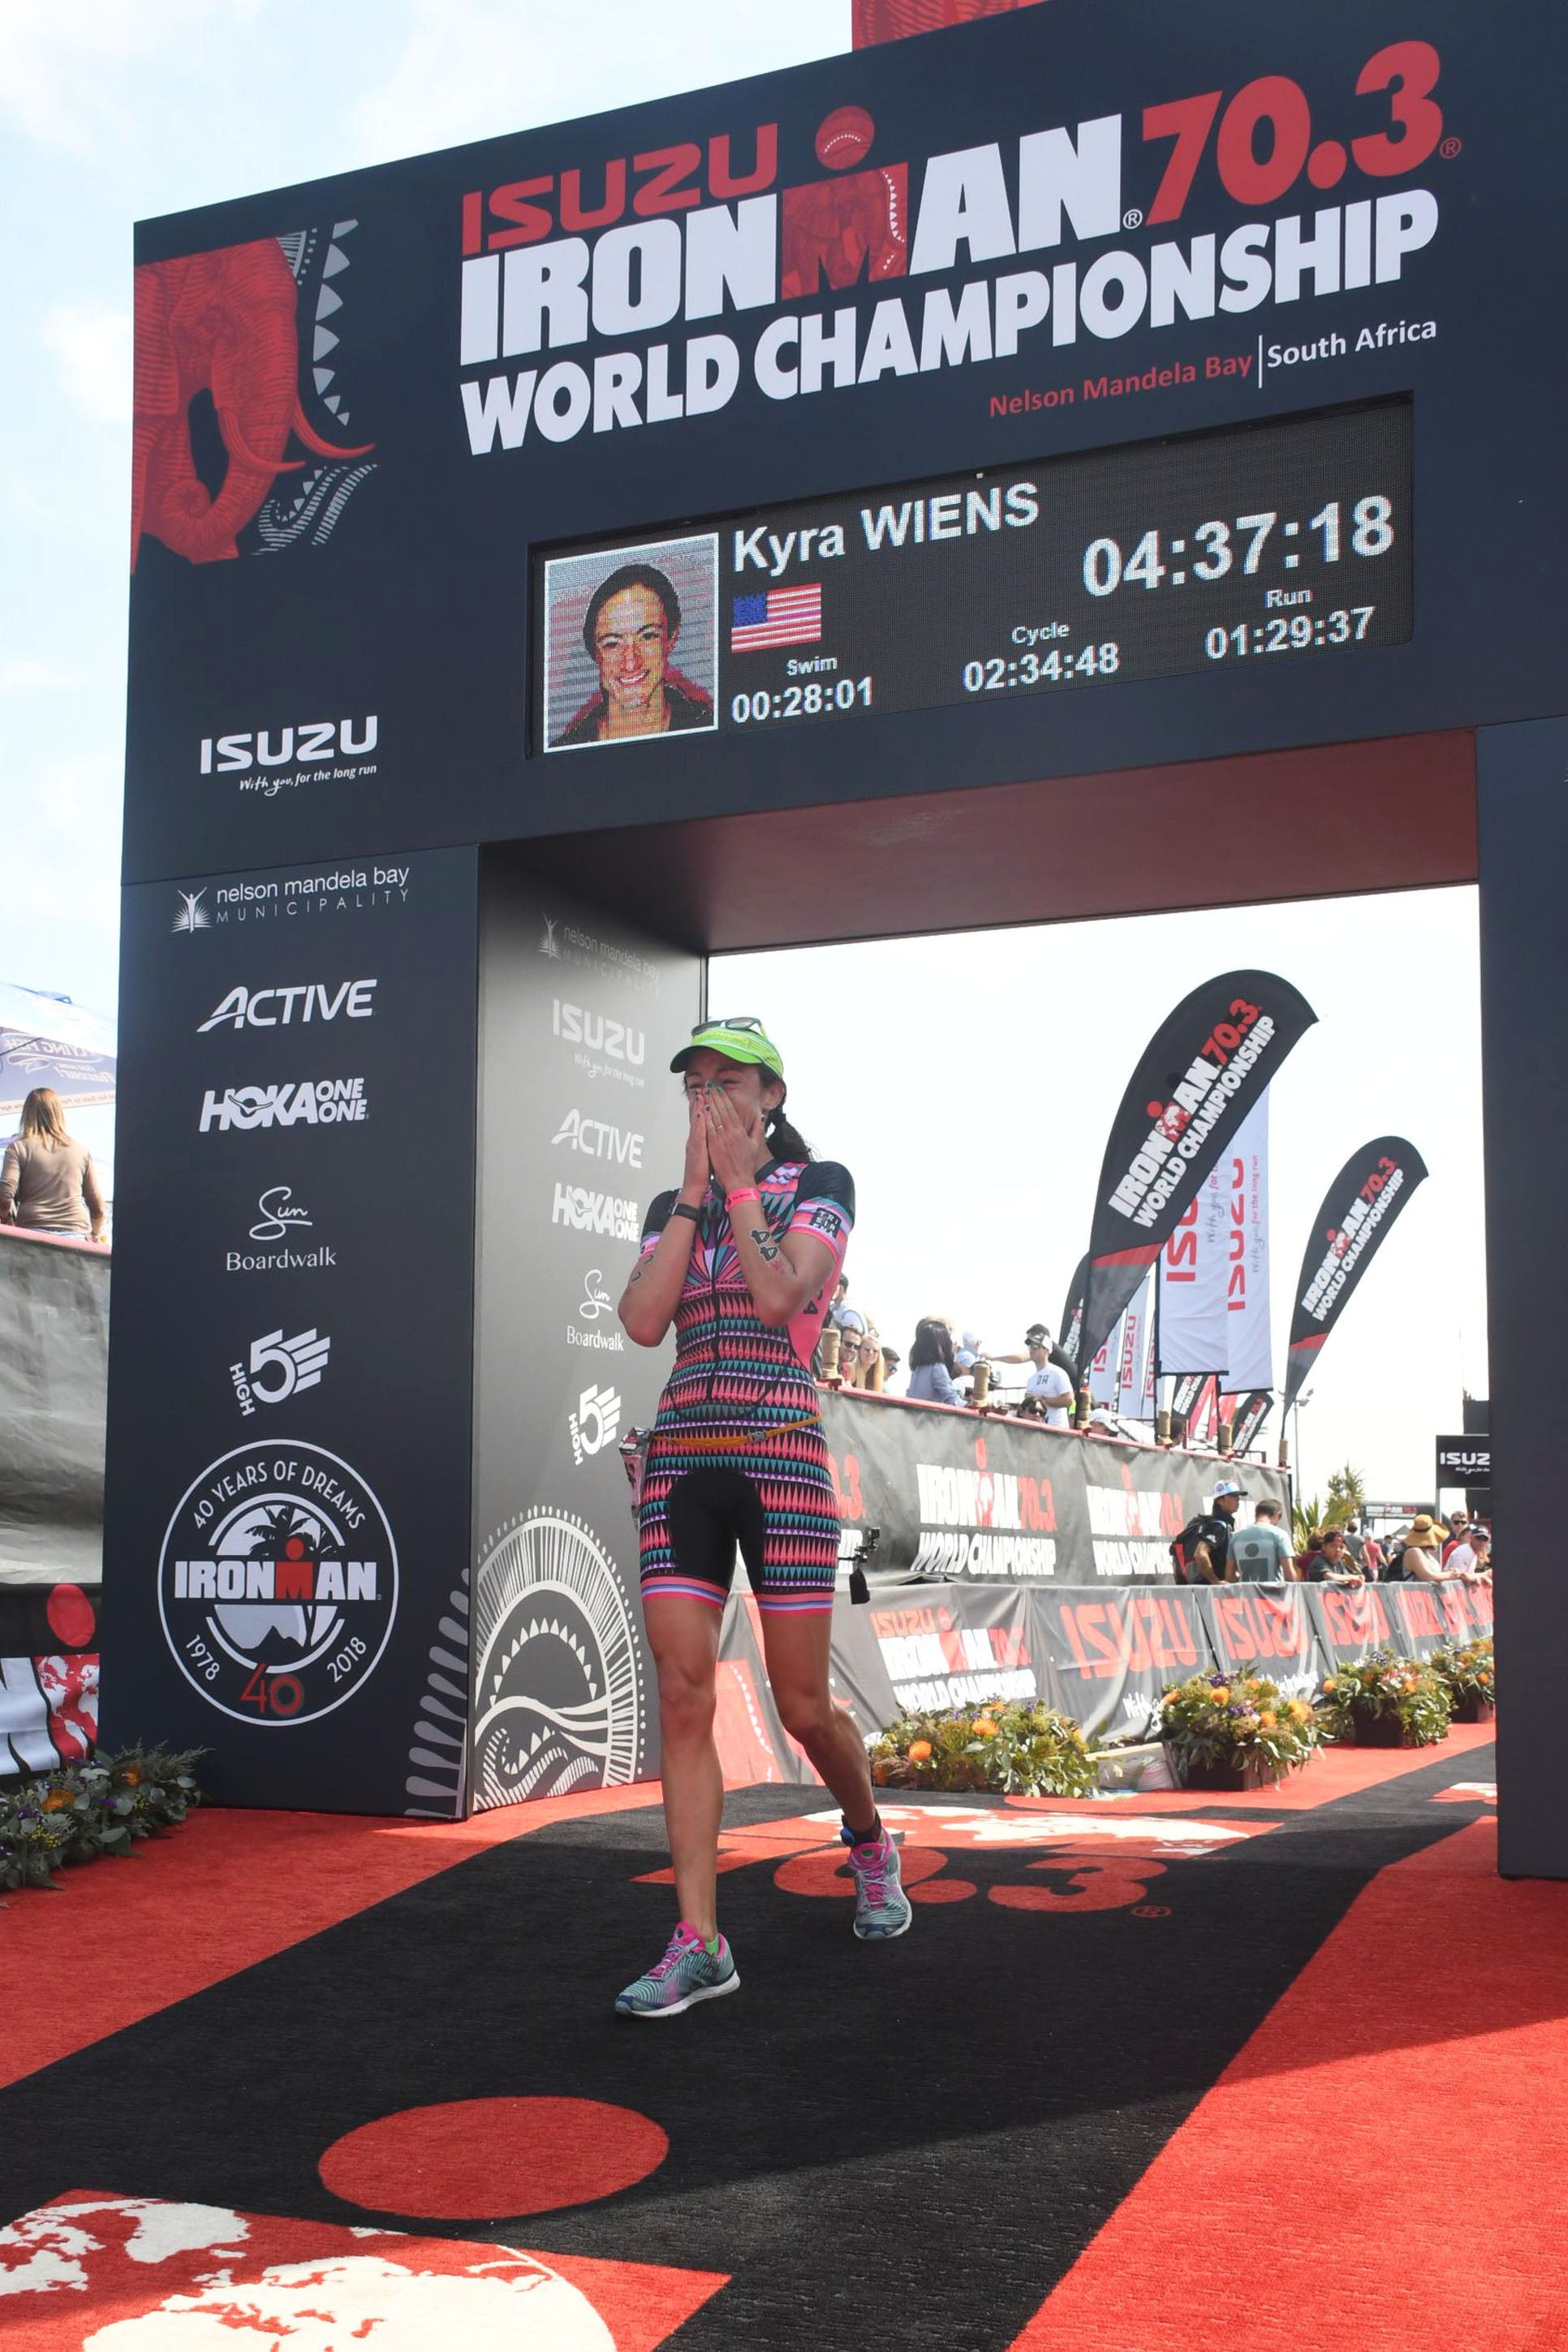 Kyra Wiens Tri Sirena Professional Triathlete World Championships 70.3 South Africa 2018 Rainbow Nation Finish